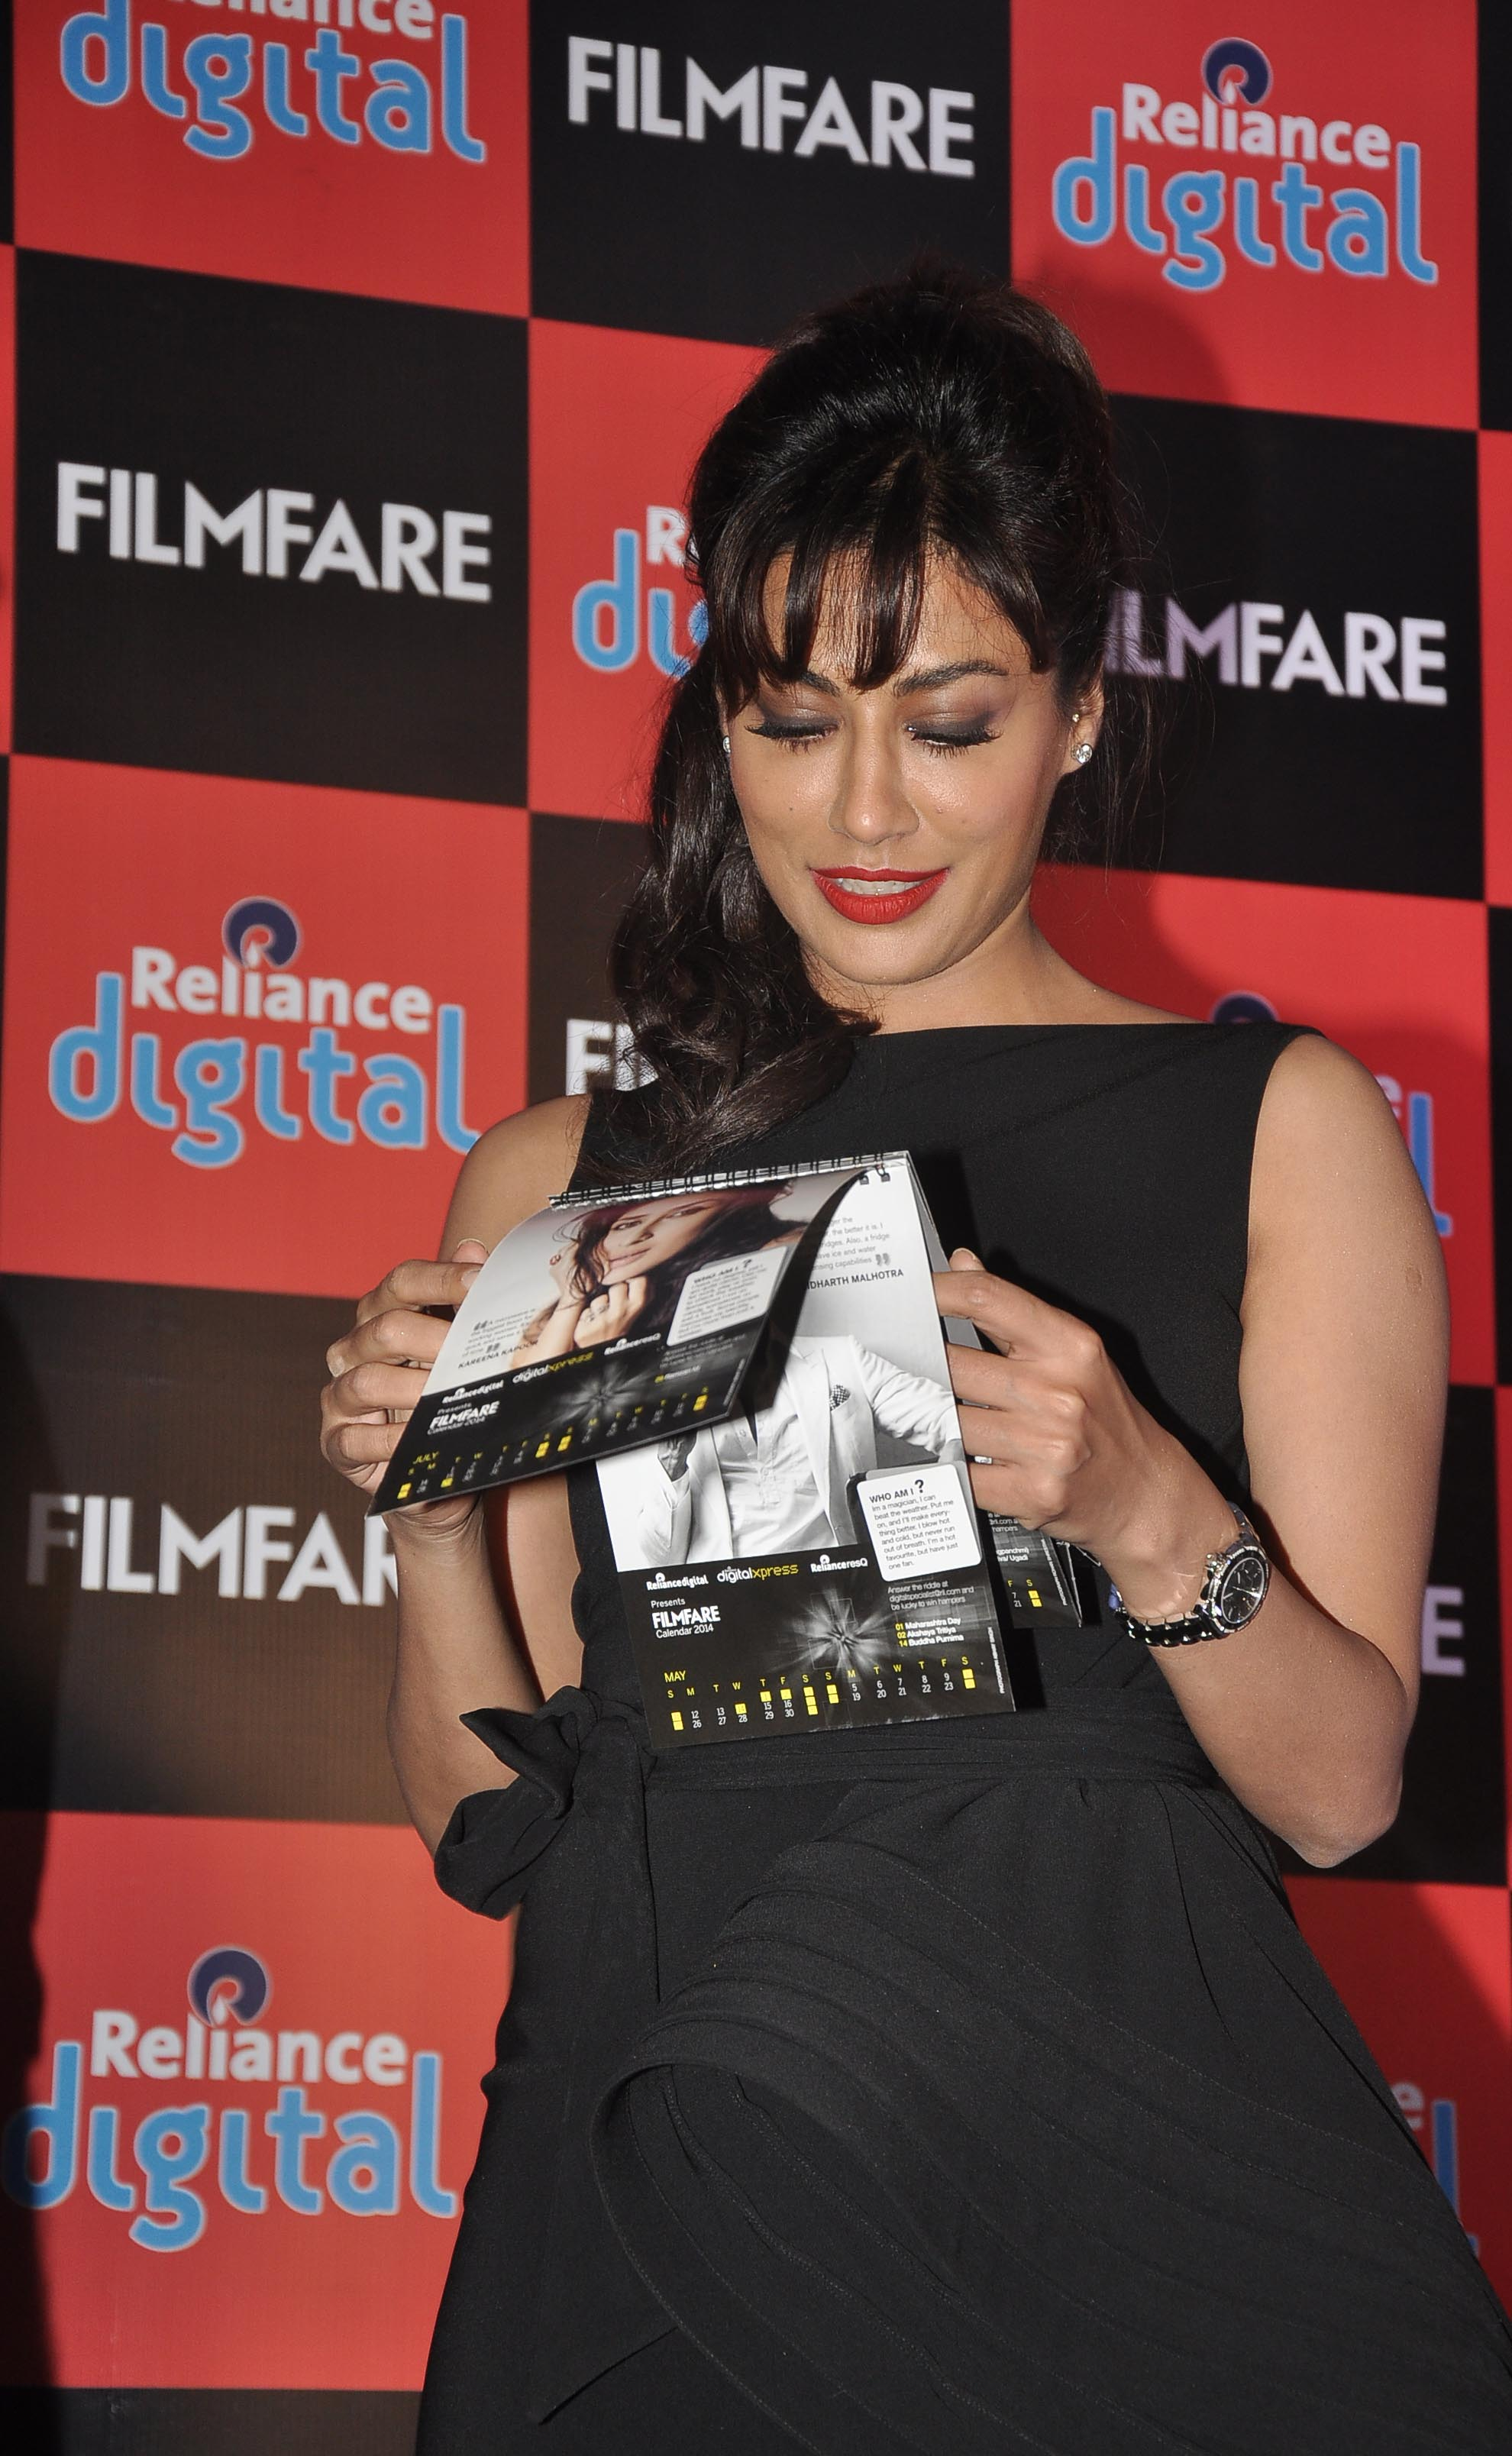 Filmfare, India's most definitive publications on Indian cinema, is the country's oldest and most established film magazine.